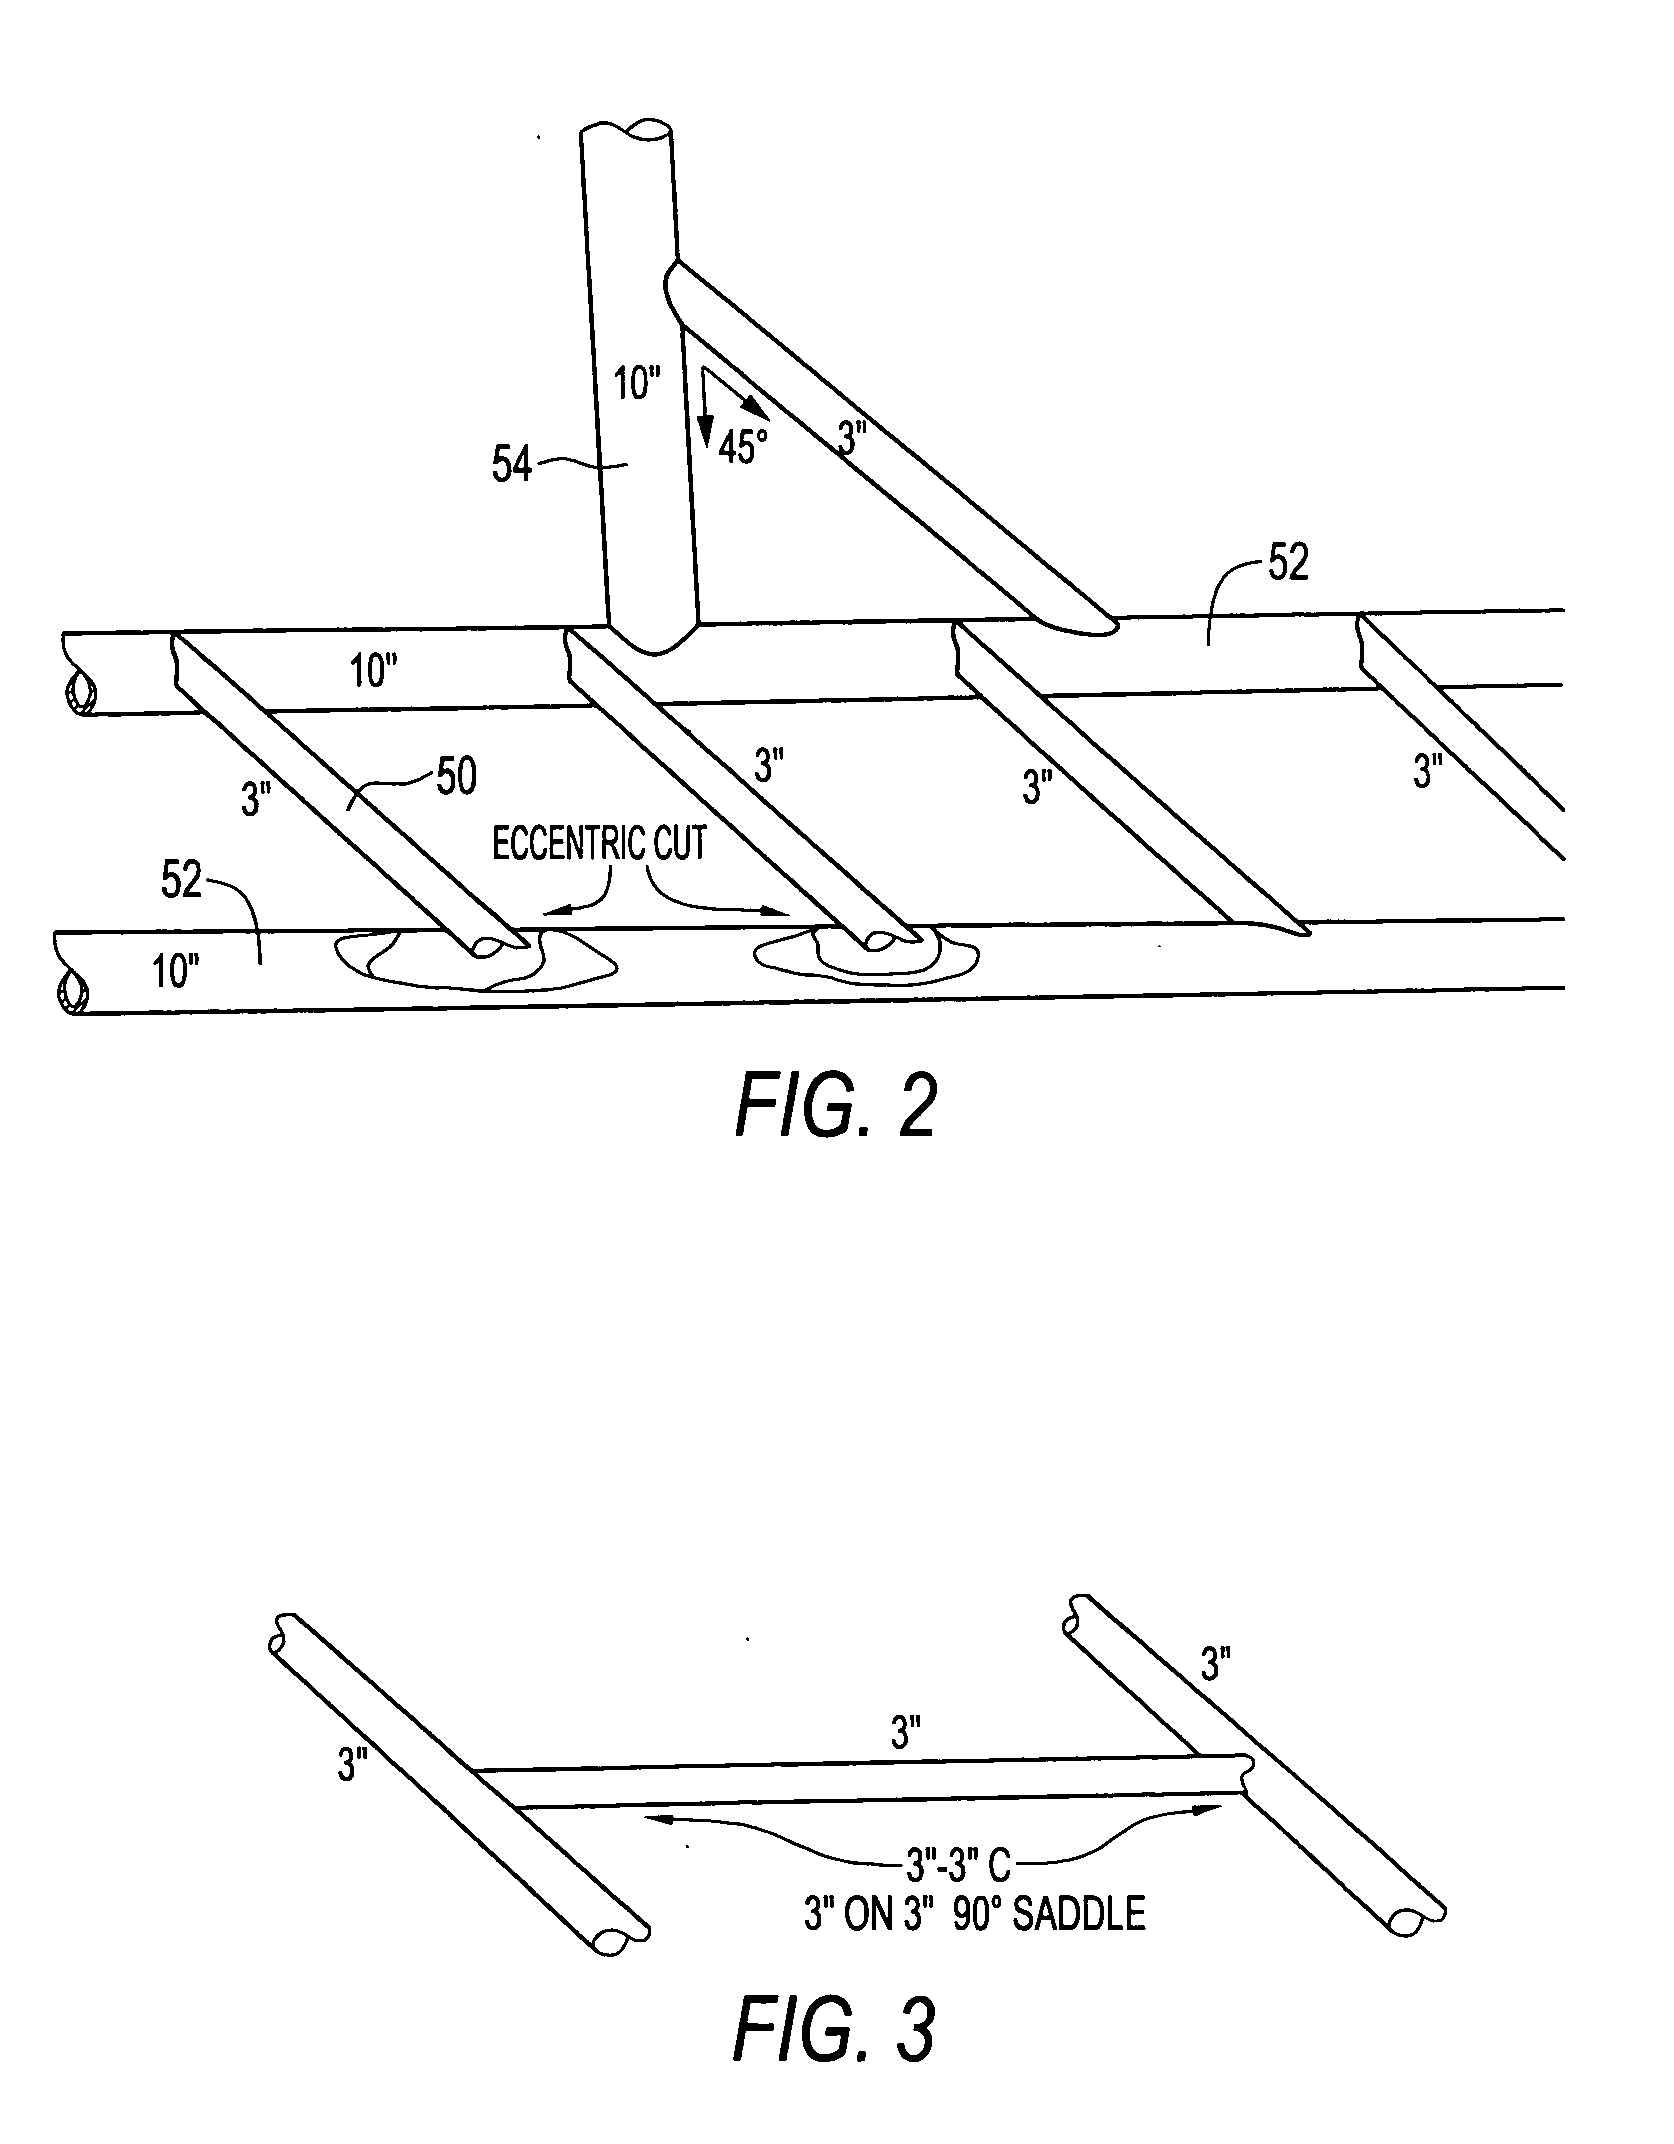 Amazing 20 degree angle template ideas resume ideas namanasa patent us20060225291 pipe cutting template google patents pronofoot35fo Choice Image